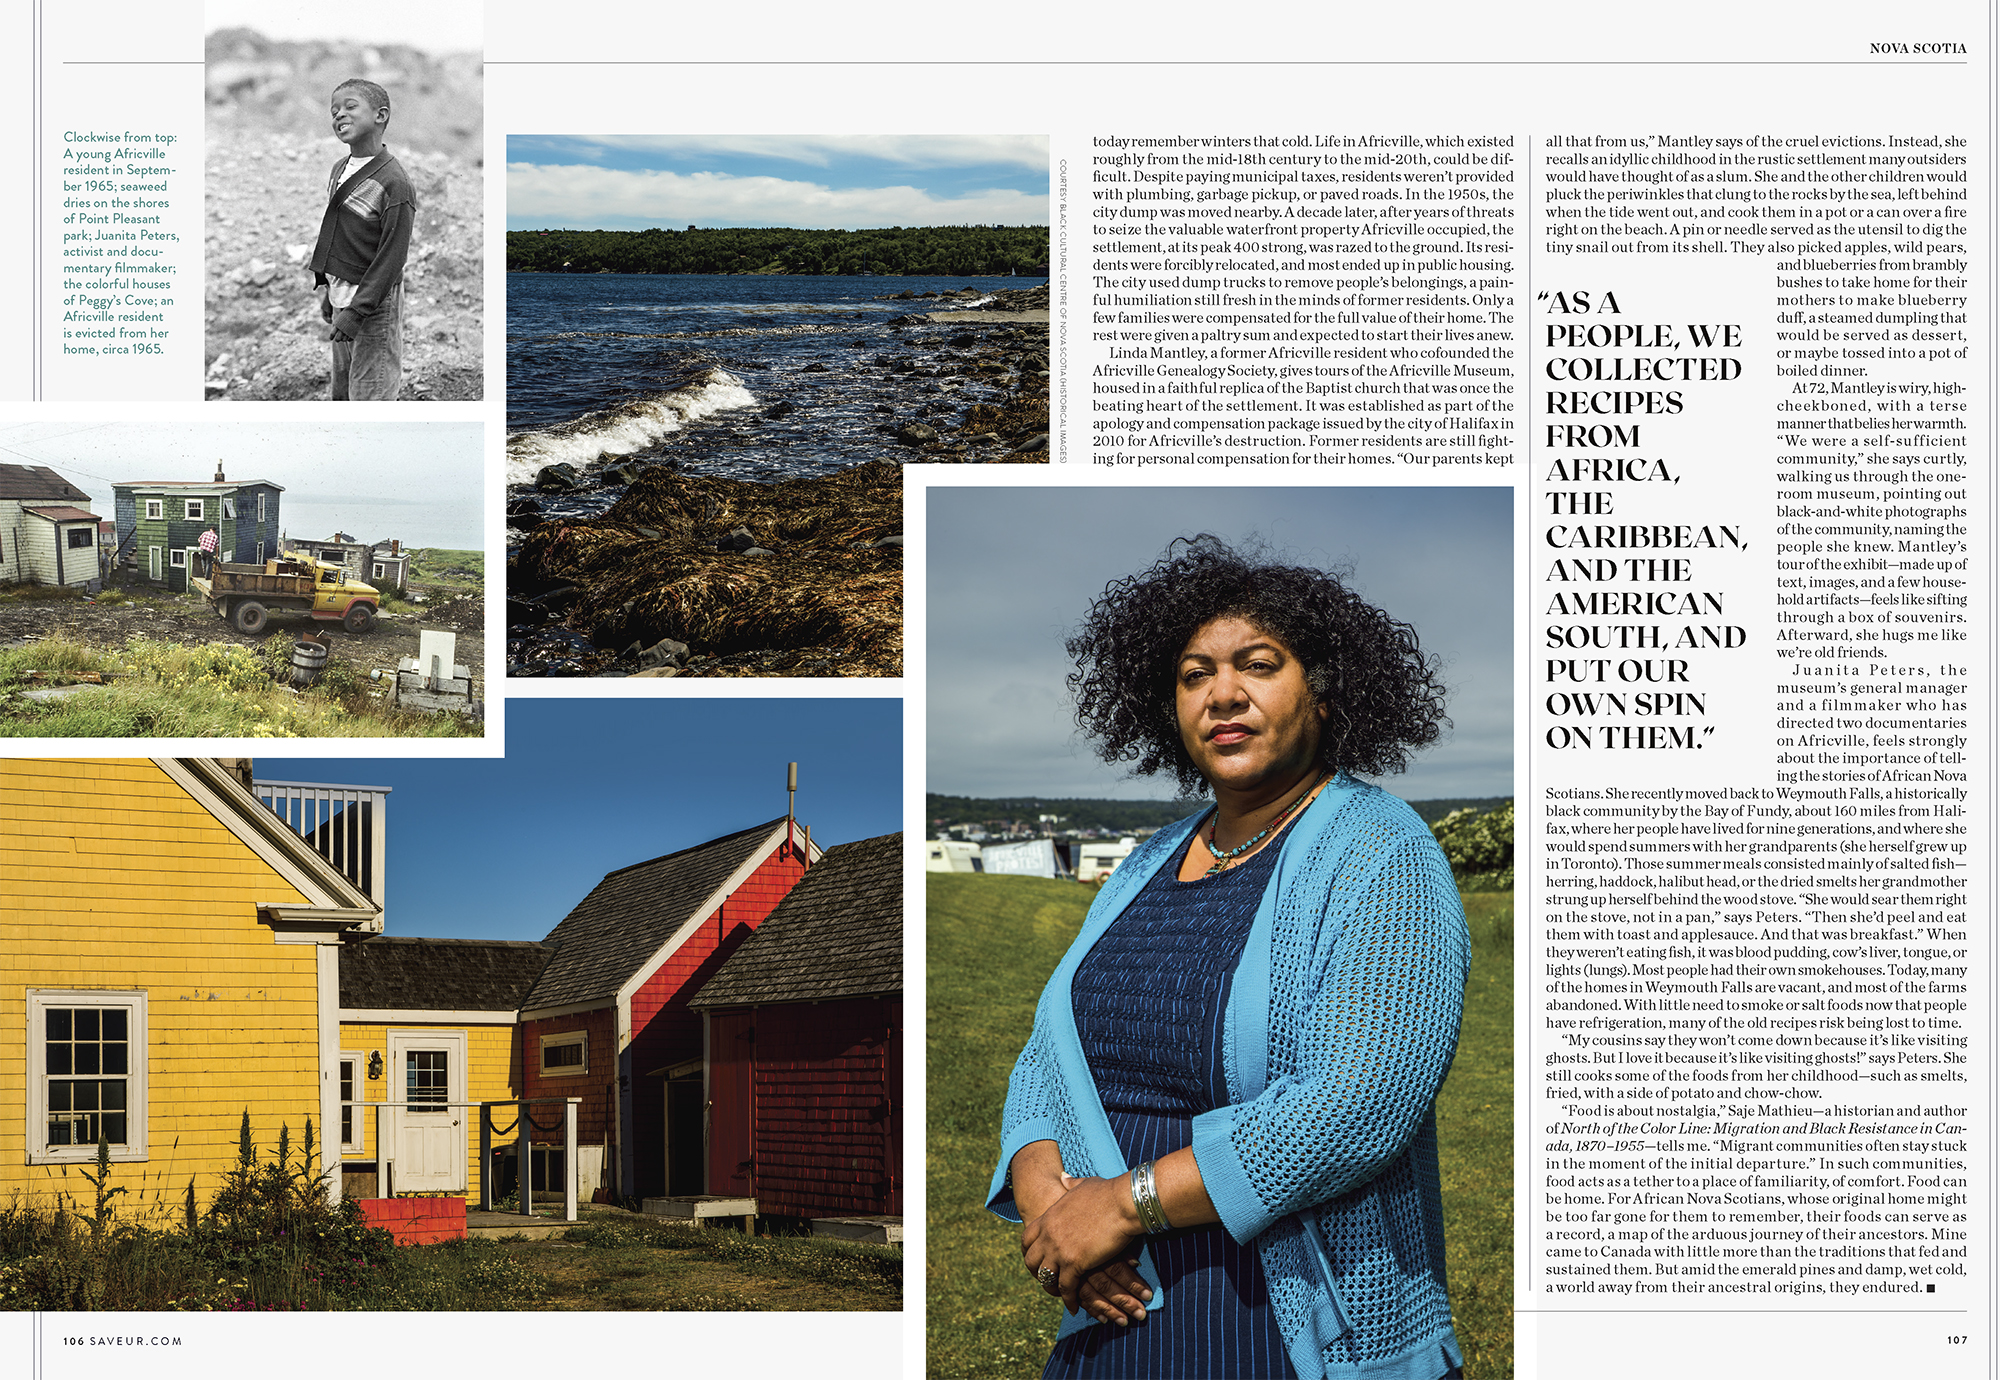 African Nova Scotian Cooking for Saveur Magazine